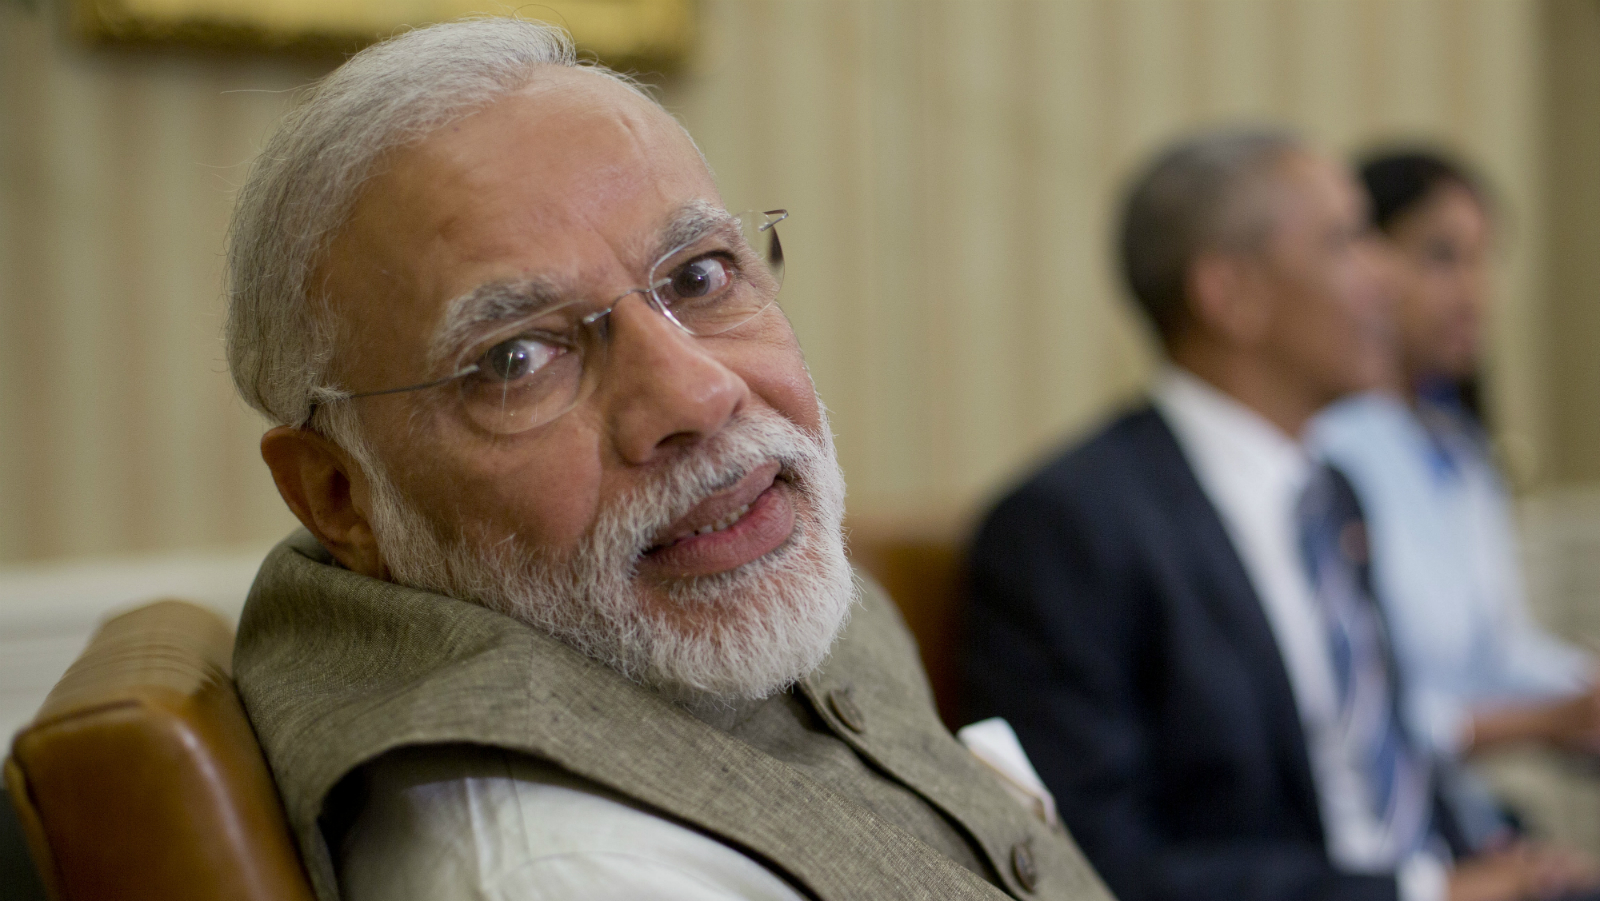 Indian Prime Minister India Narendra Modi looks over his shoulder to speak with an aide during his meeting with President Barack Obama in the Oval Office of the White House in Washington, Tuesday, June 7, 2016.